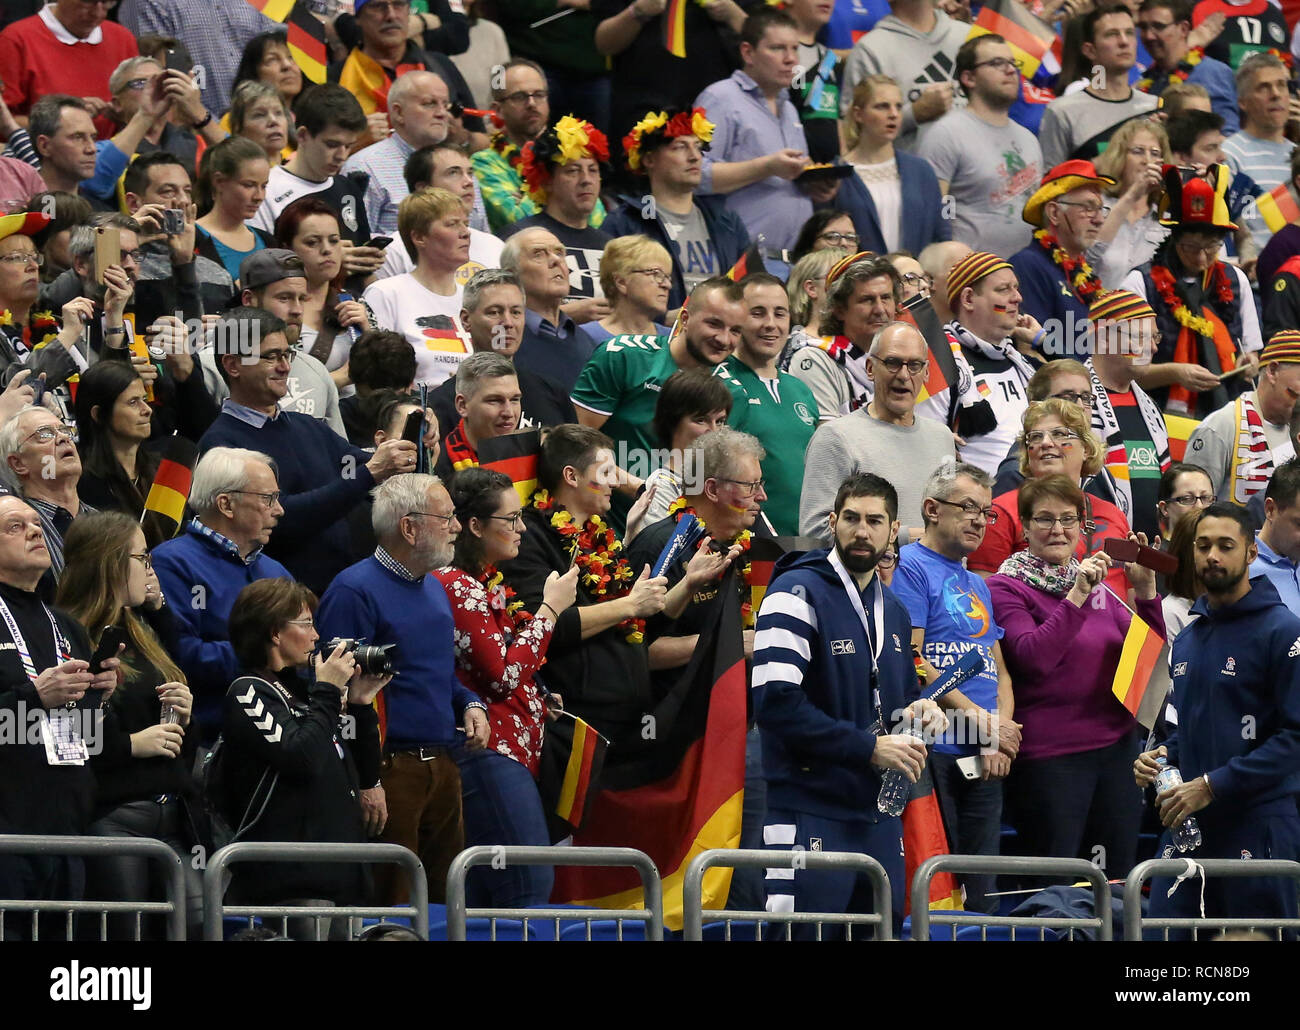 Berlin, Germany. 15th January, 2019.Handball legend Nikola Karabatic goes in the stand to watch Team France taking on IHF World Championship co-host Team Germany Credit: Mickael Chavet/Alamy Live News - Stock Image